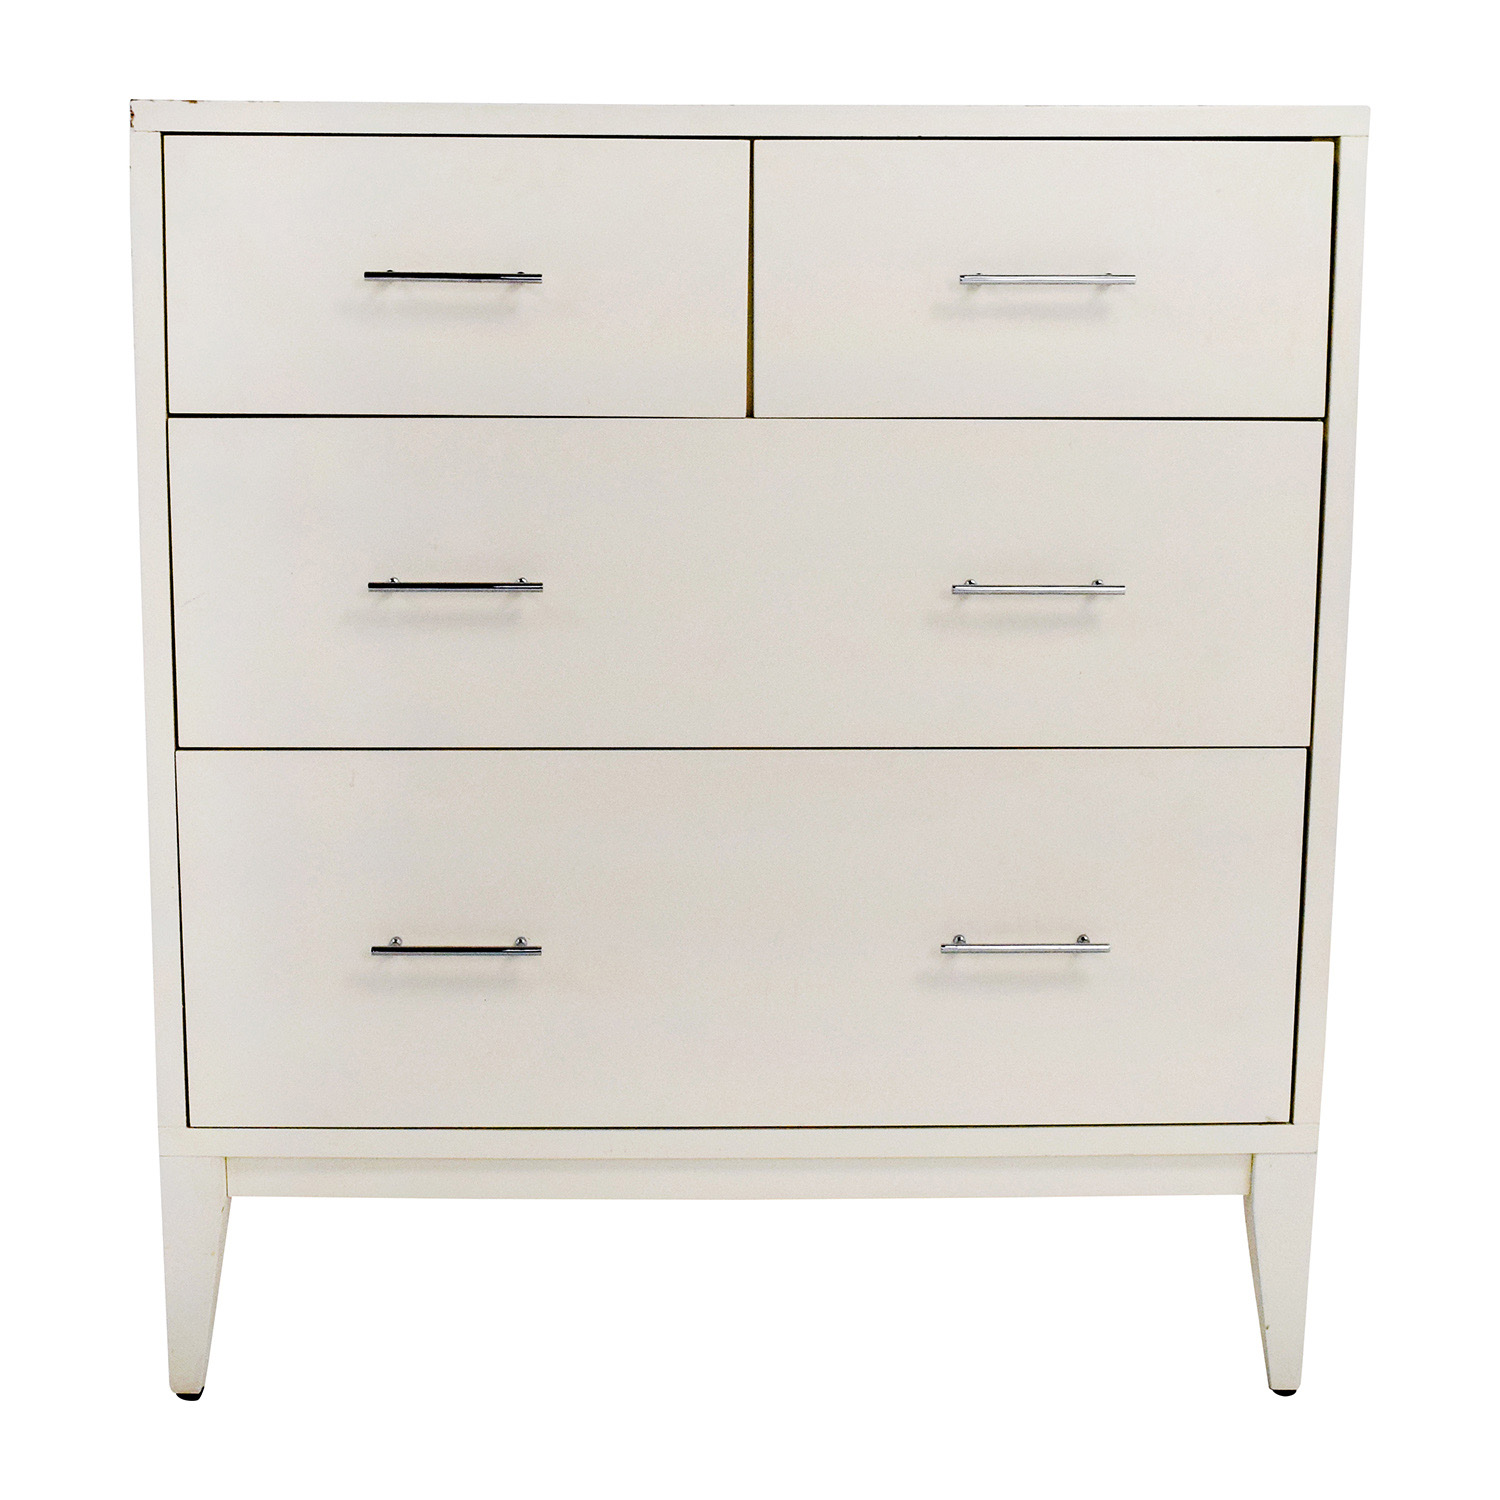 West Elm West Elm Narrow Leg 4-Drawer White Dresser price